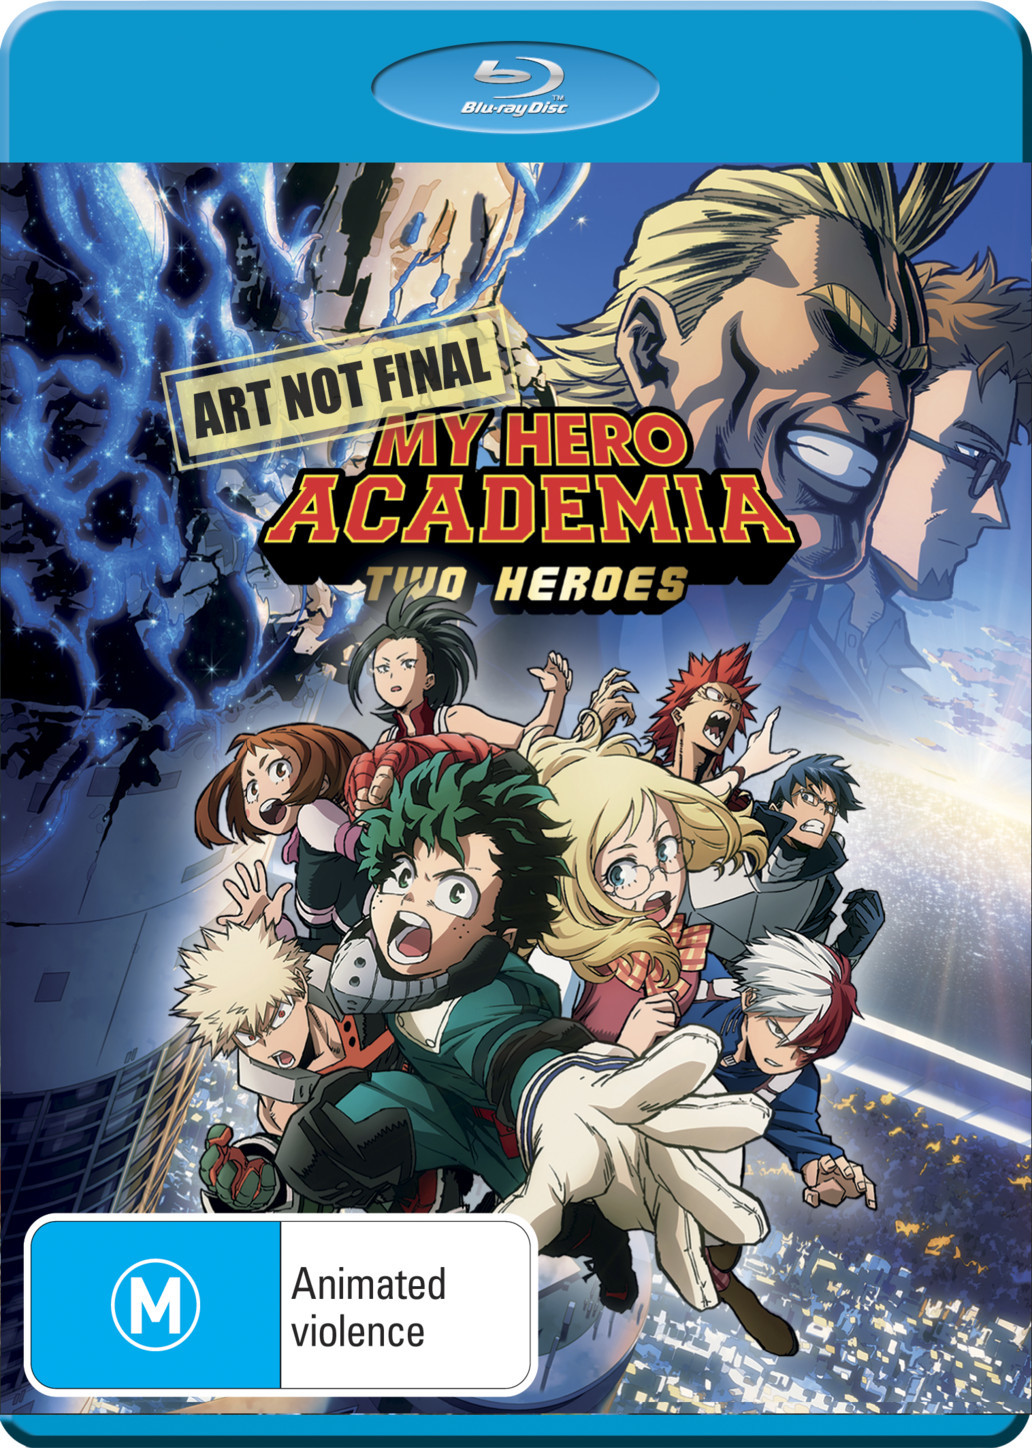 My Hero Academia: The Movie - Two Heroes on DVD, Blu-ray image